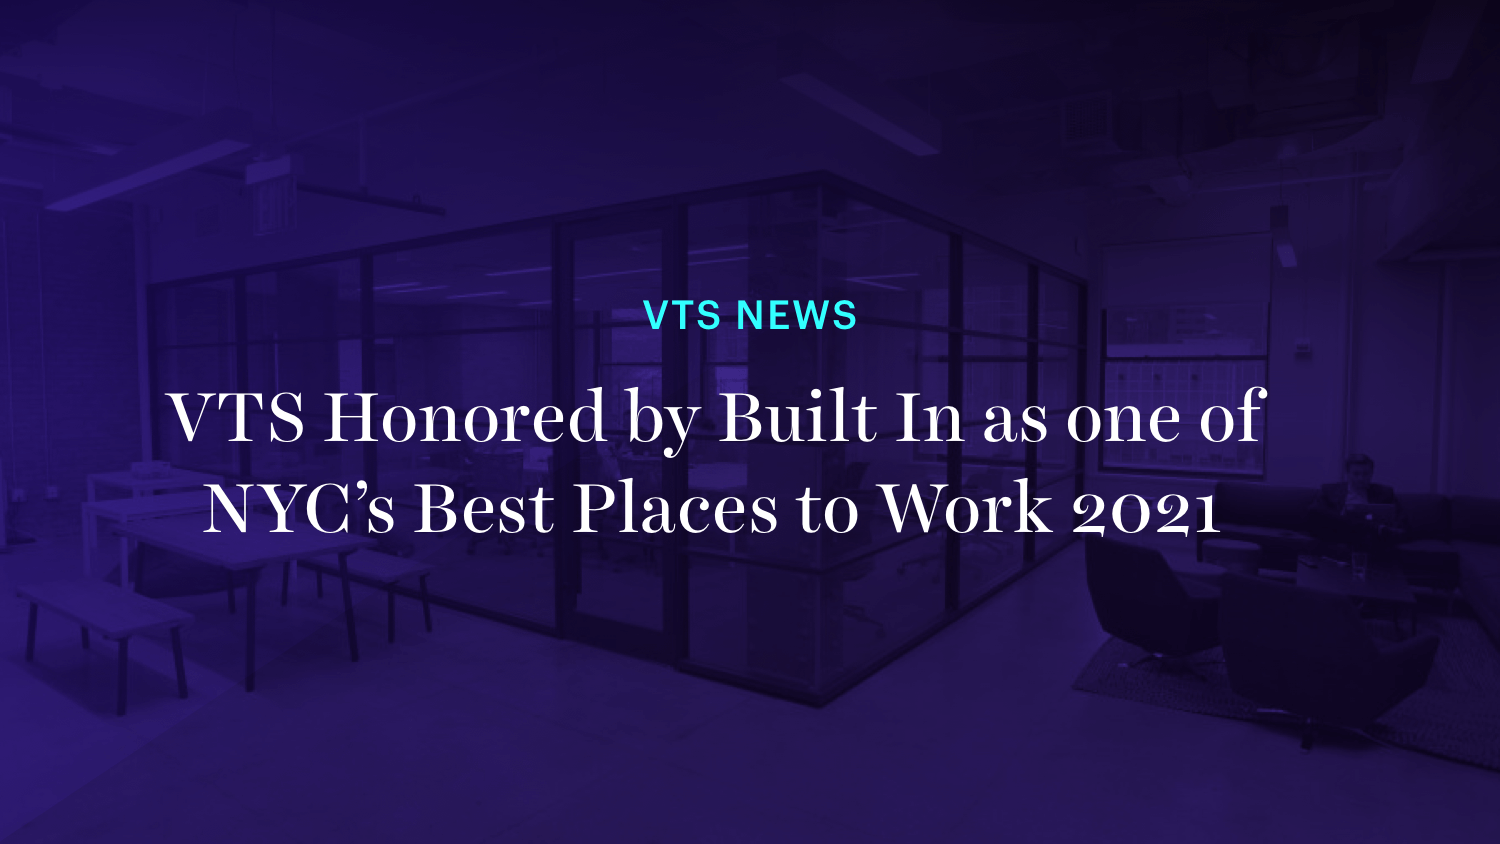 VTS Honored by Built In as one of NYC's Best Places to Work 2021